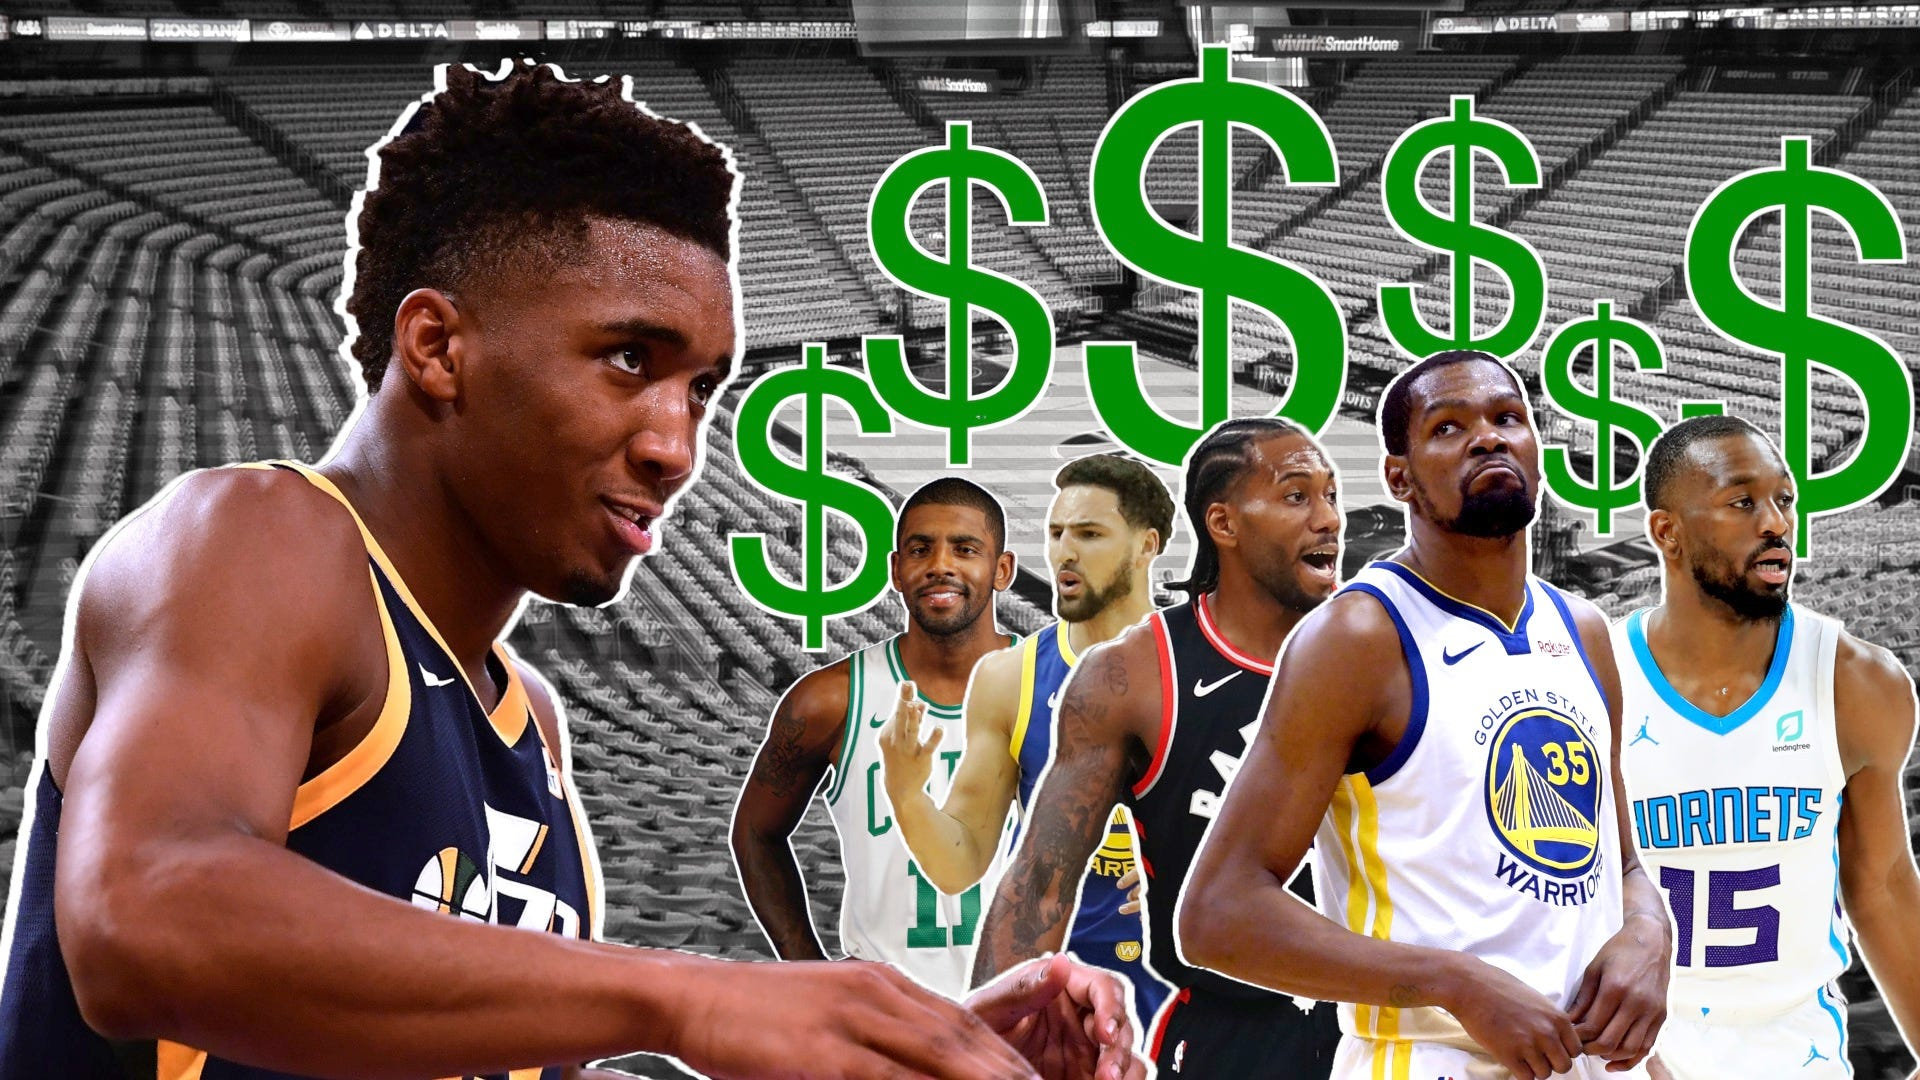 Wondering where free agents like Kevin Durant, Kyrie Irving or Kawhi Leonard will land?